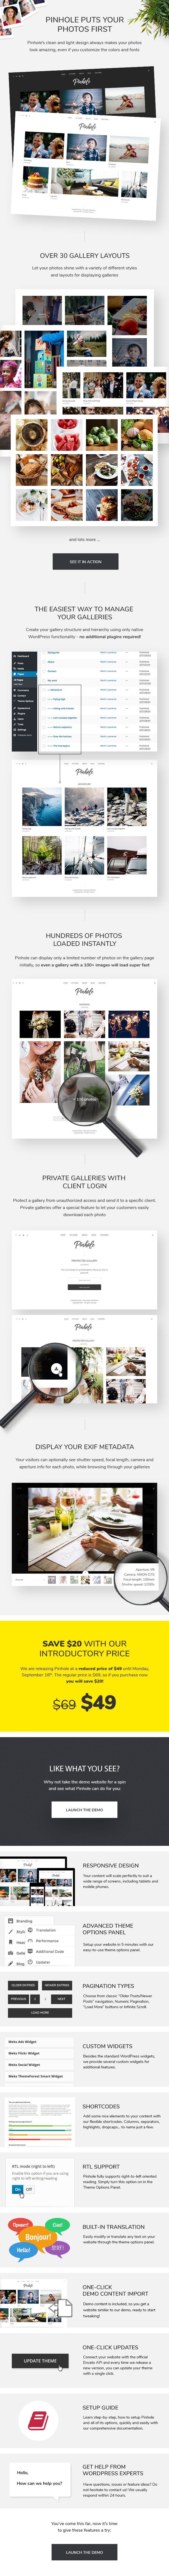 Pinhole - WordPress Gallery Theme for Photographers pinhole - wordpress gallery theme for photographers (photography) Pinhole – WordPress Gallery Theme for Photographers (Photography) pinhole item page promo v1